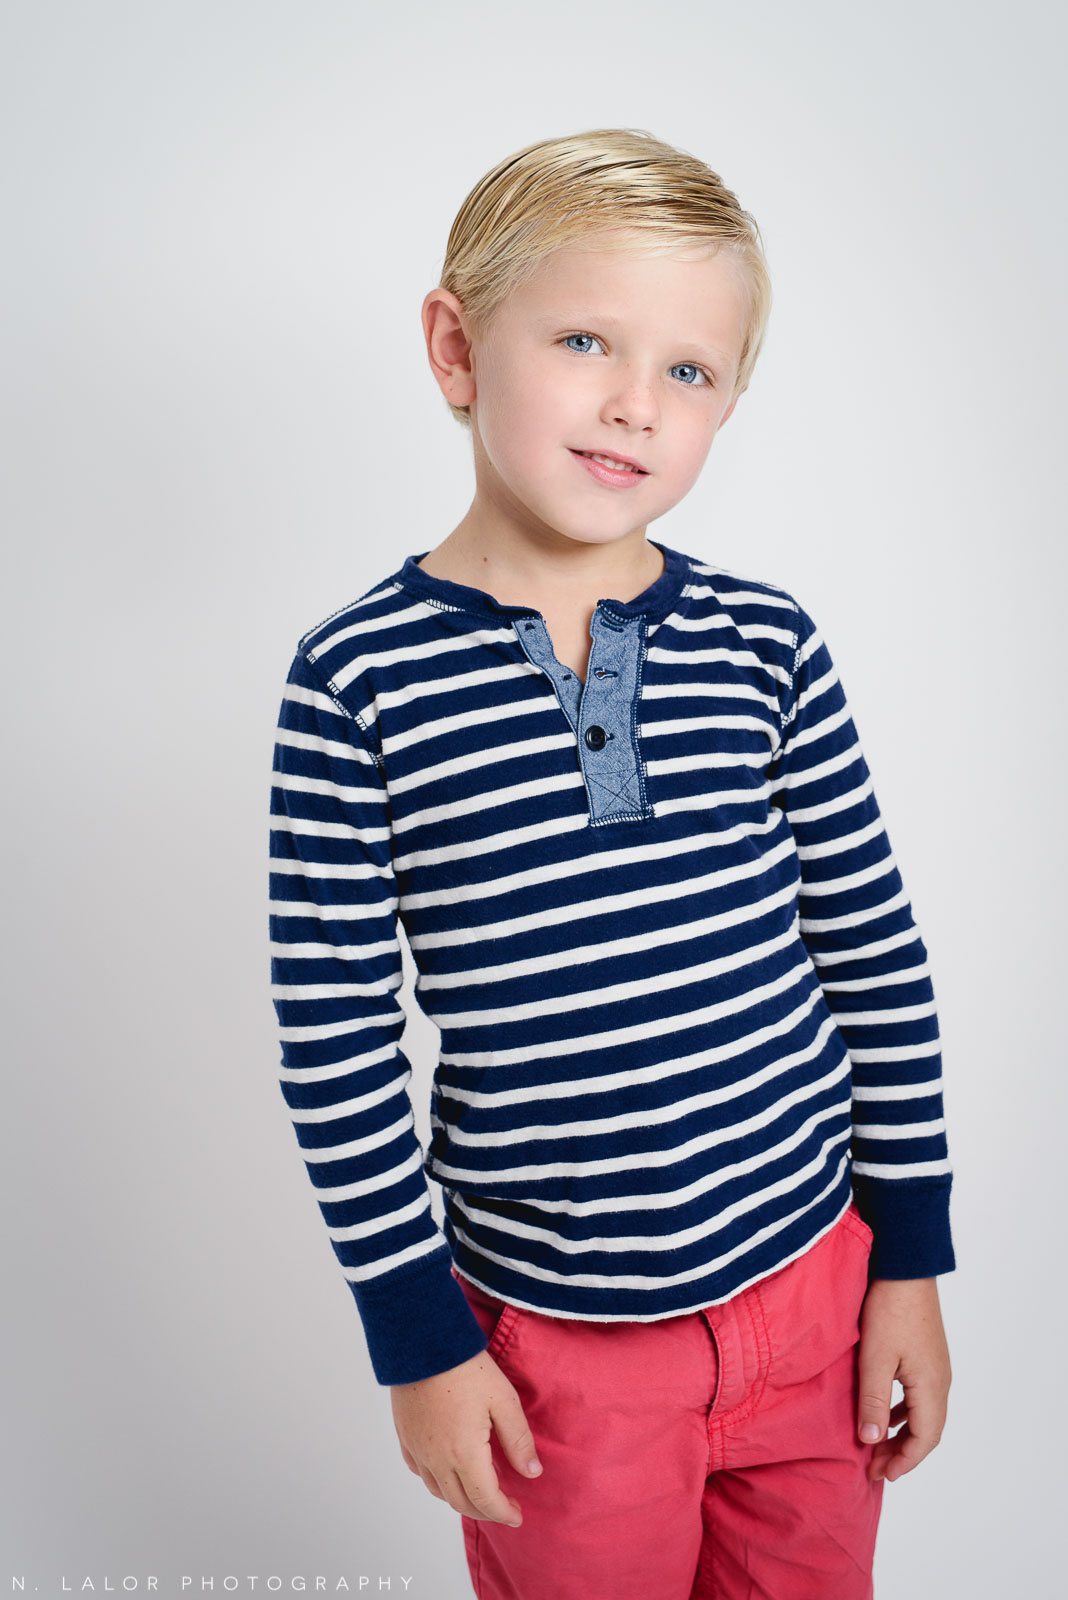 Striped shirt, boy portrait. Studio photoshoot with N. Lalor Photography in Greenwich, Connecticut.